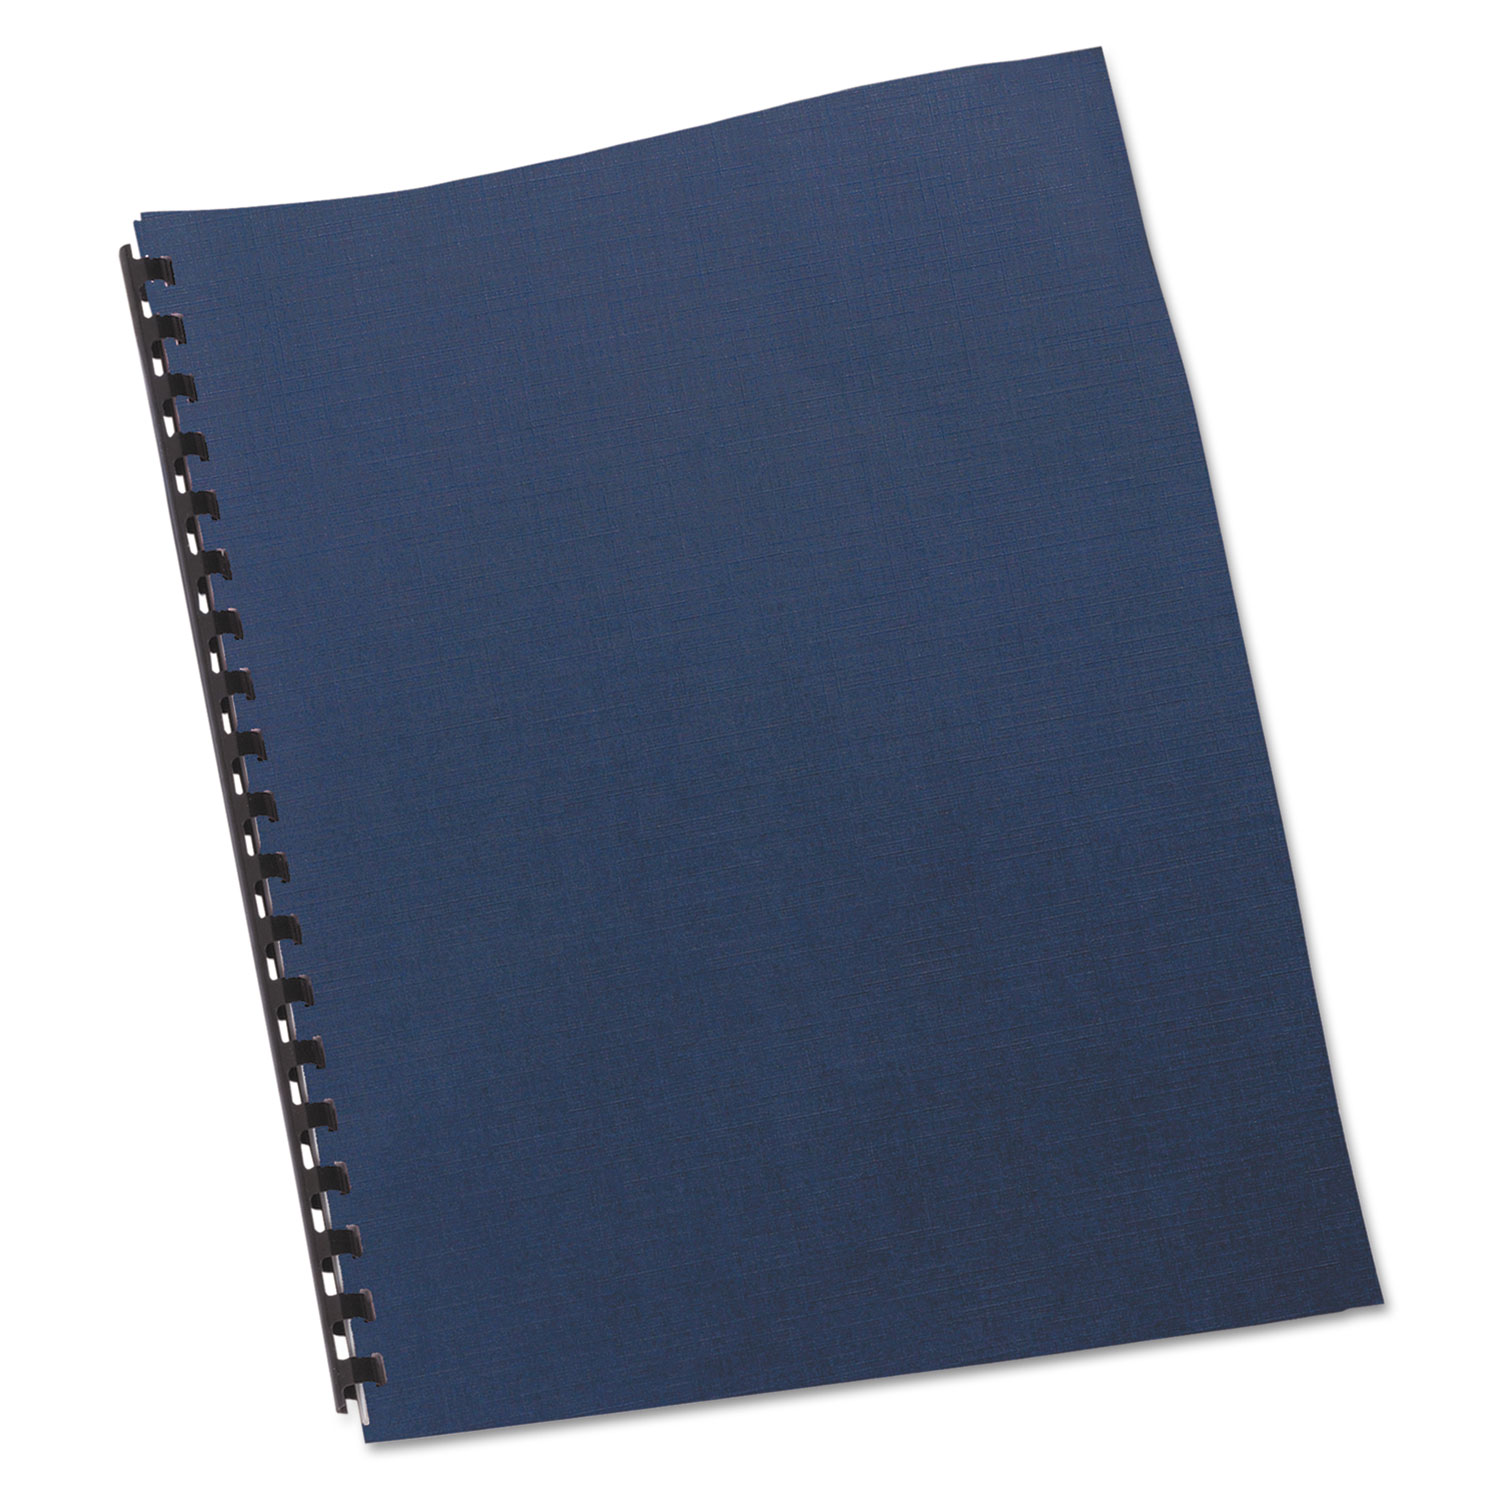 Linen Textured Binding System Covers, 11 x 8 1/2, Navy, 200/Box